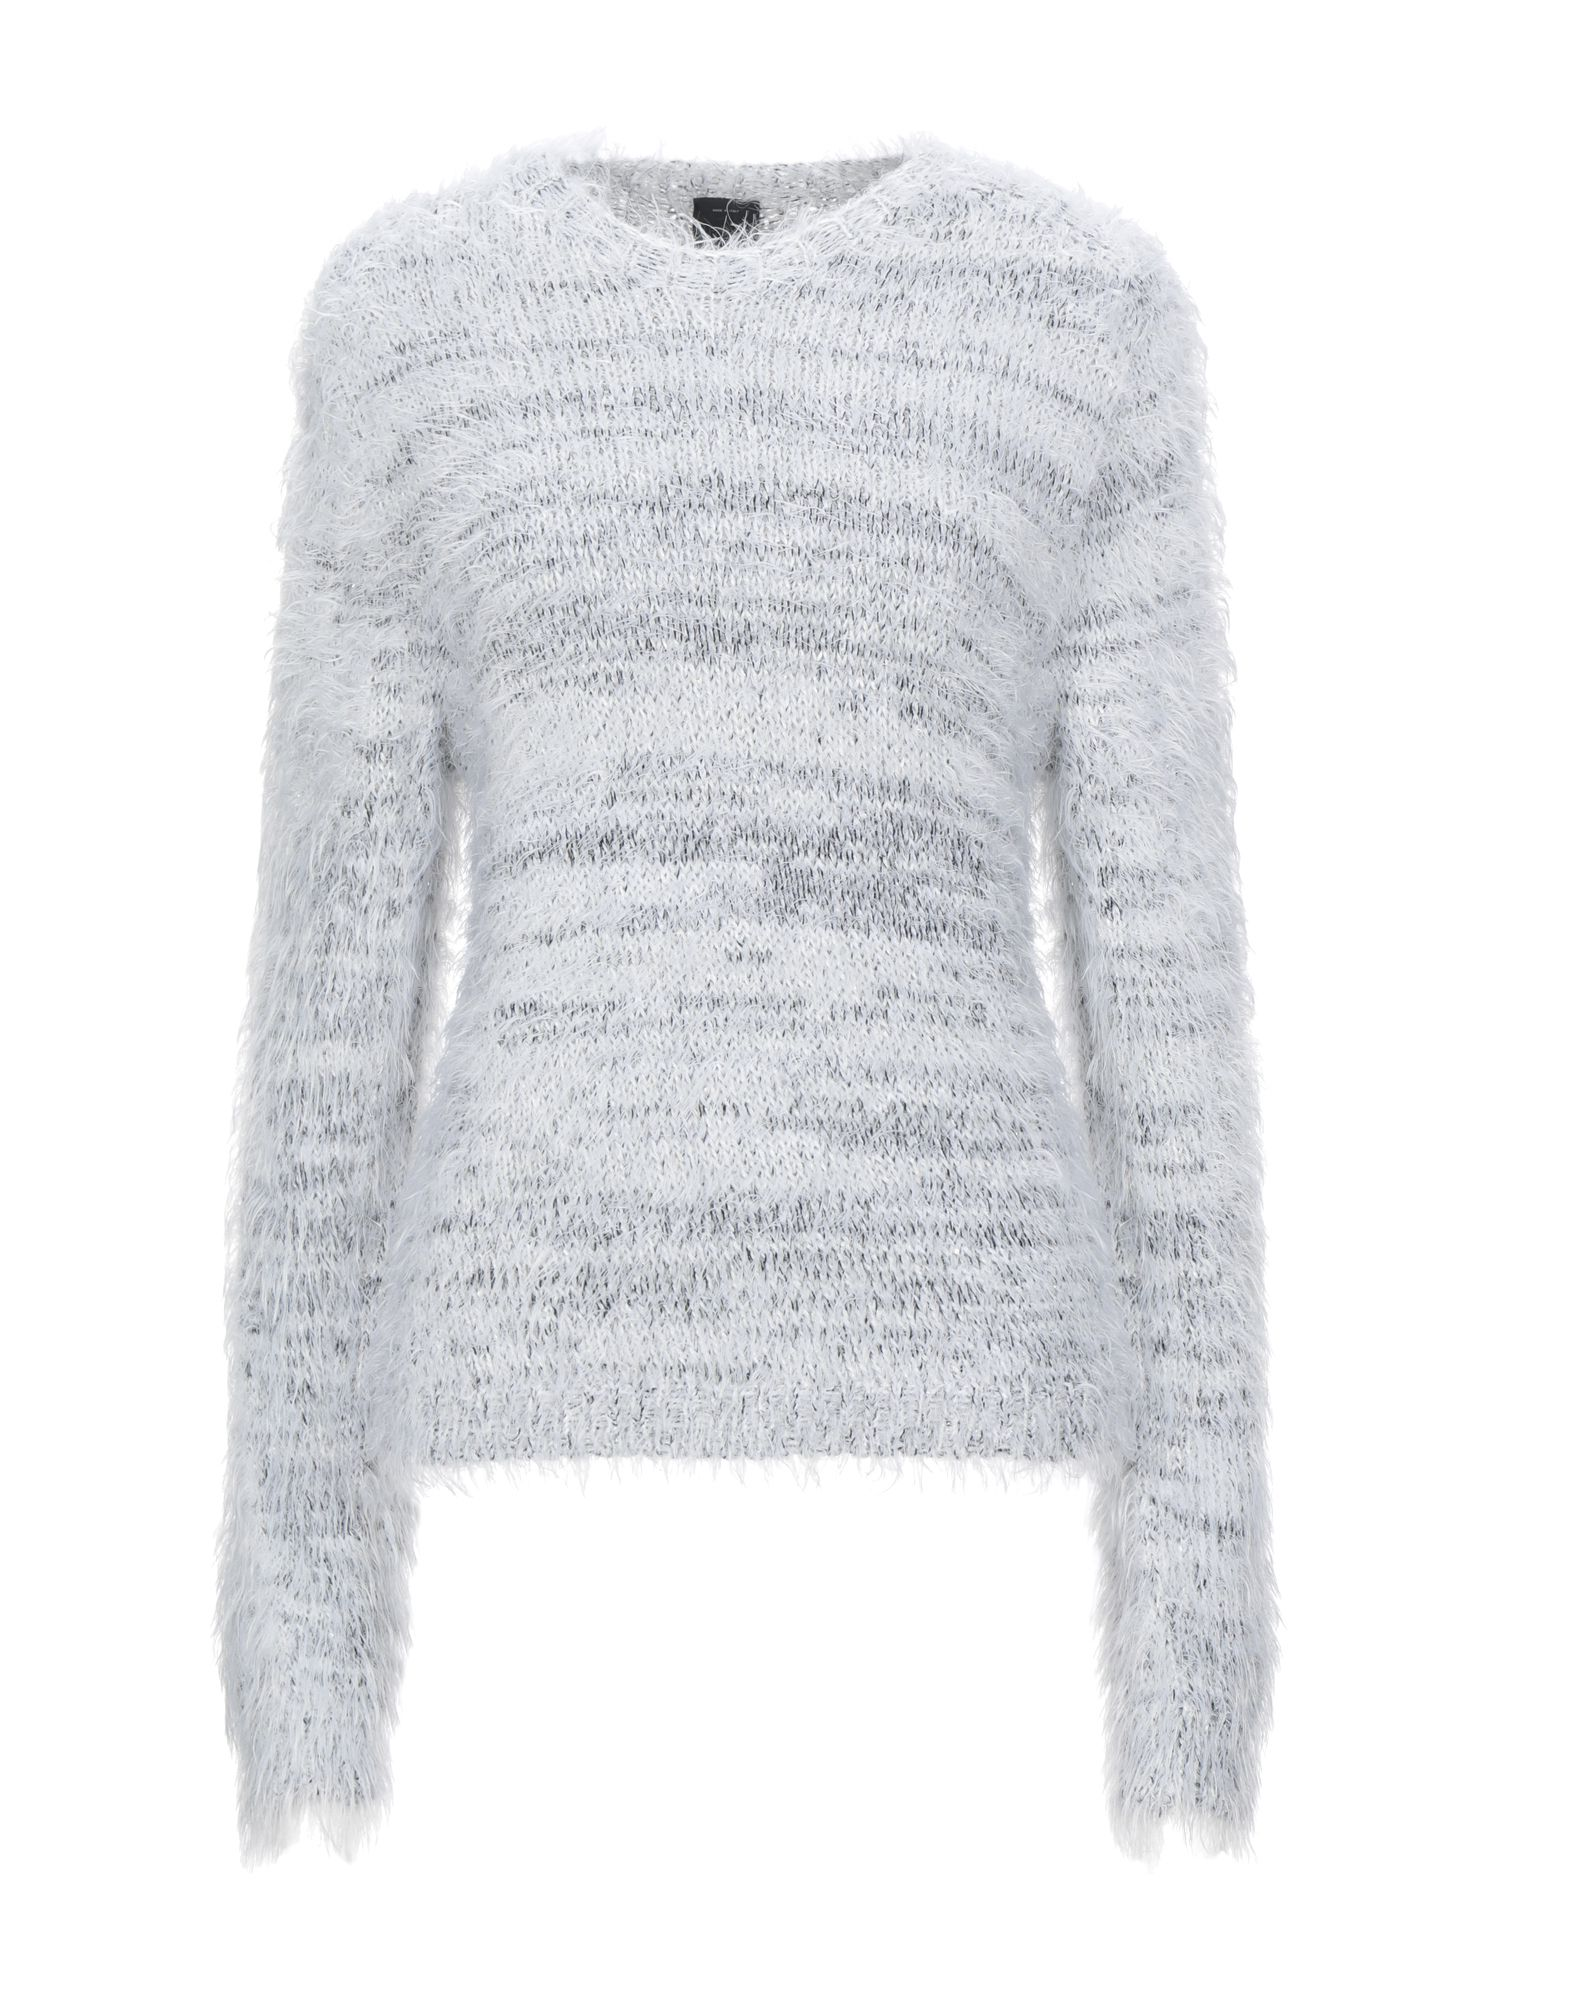 PINKO Sweaters - Item 14045689